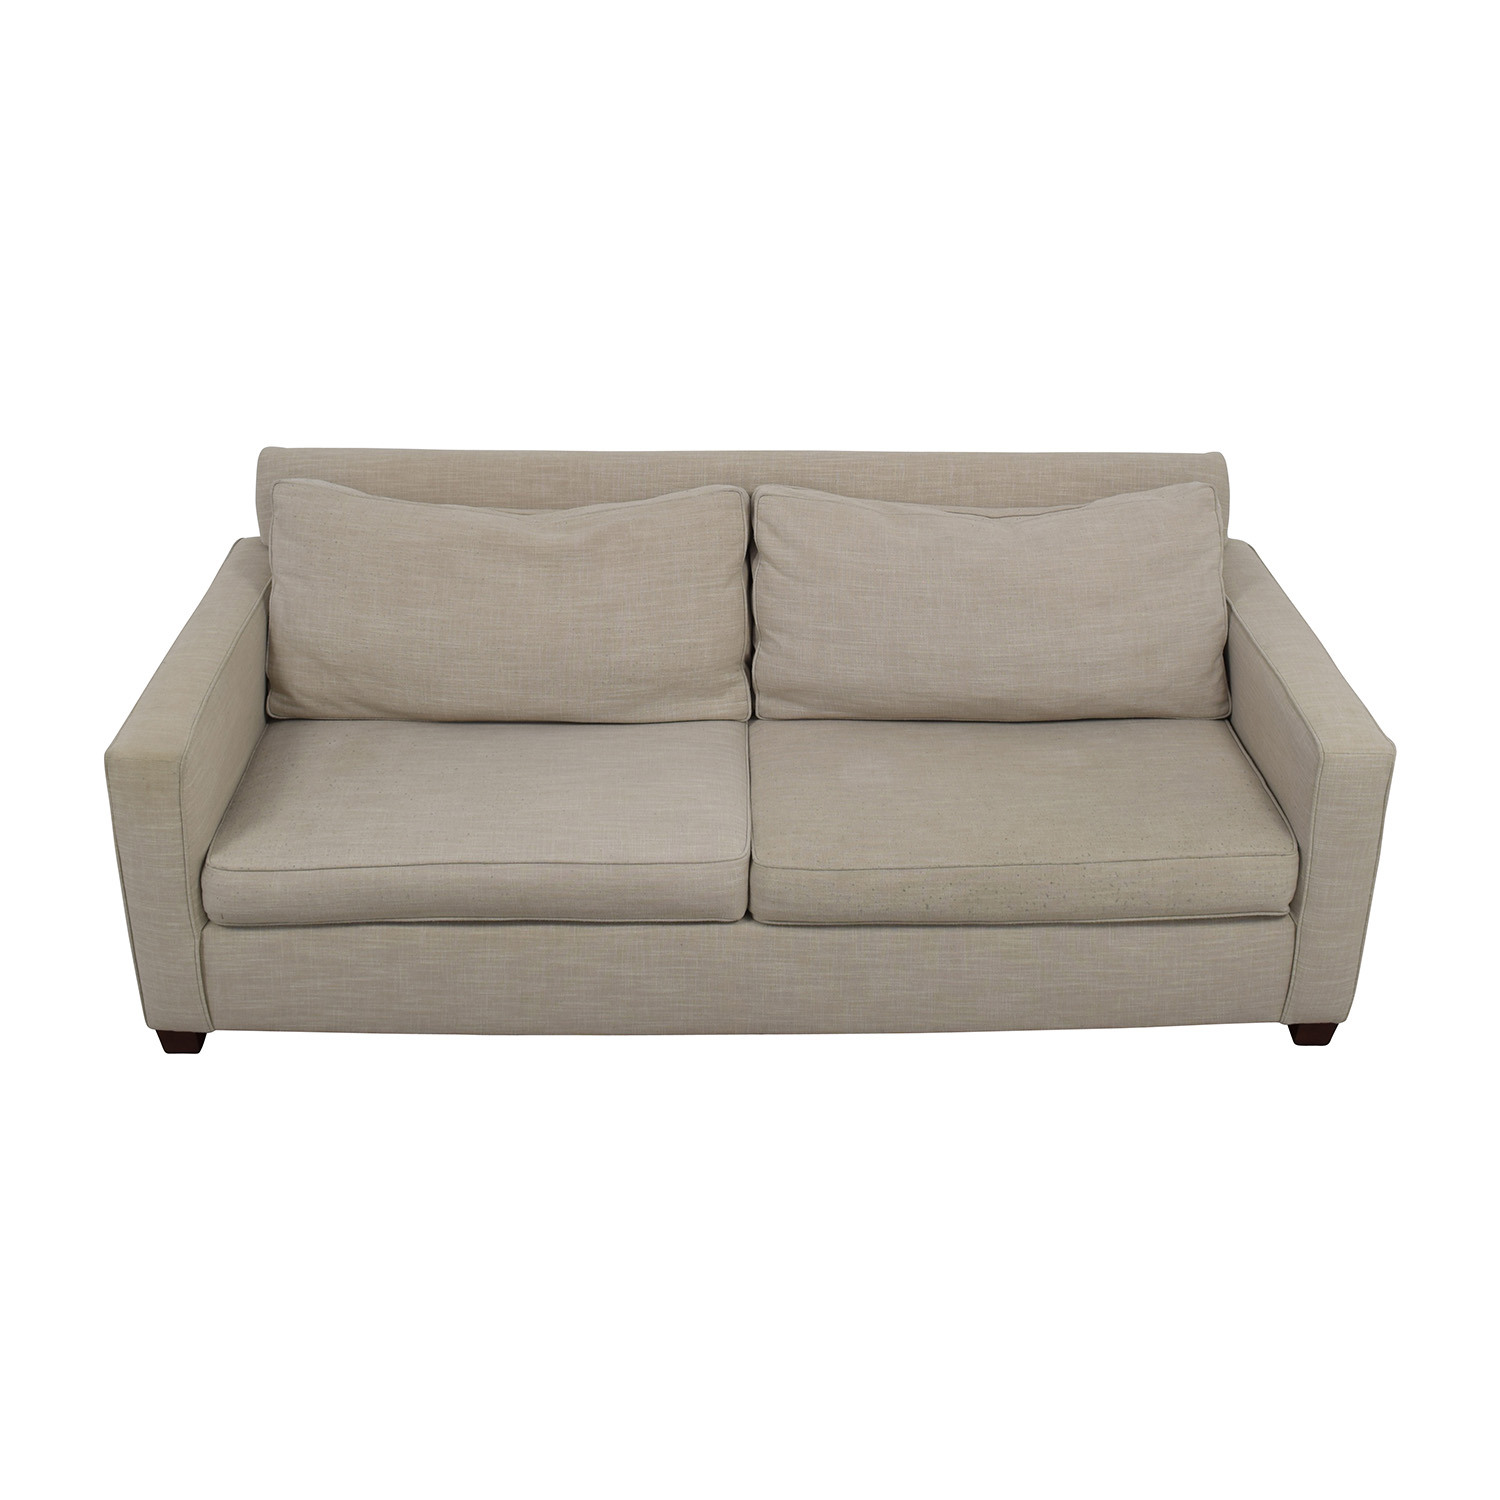 West Elm West Elm Henry Beige Sofa used